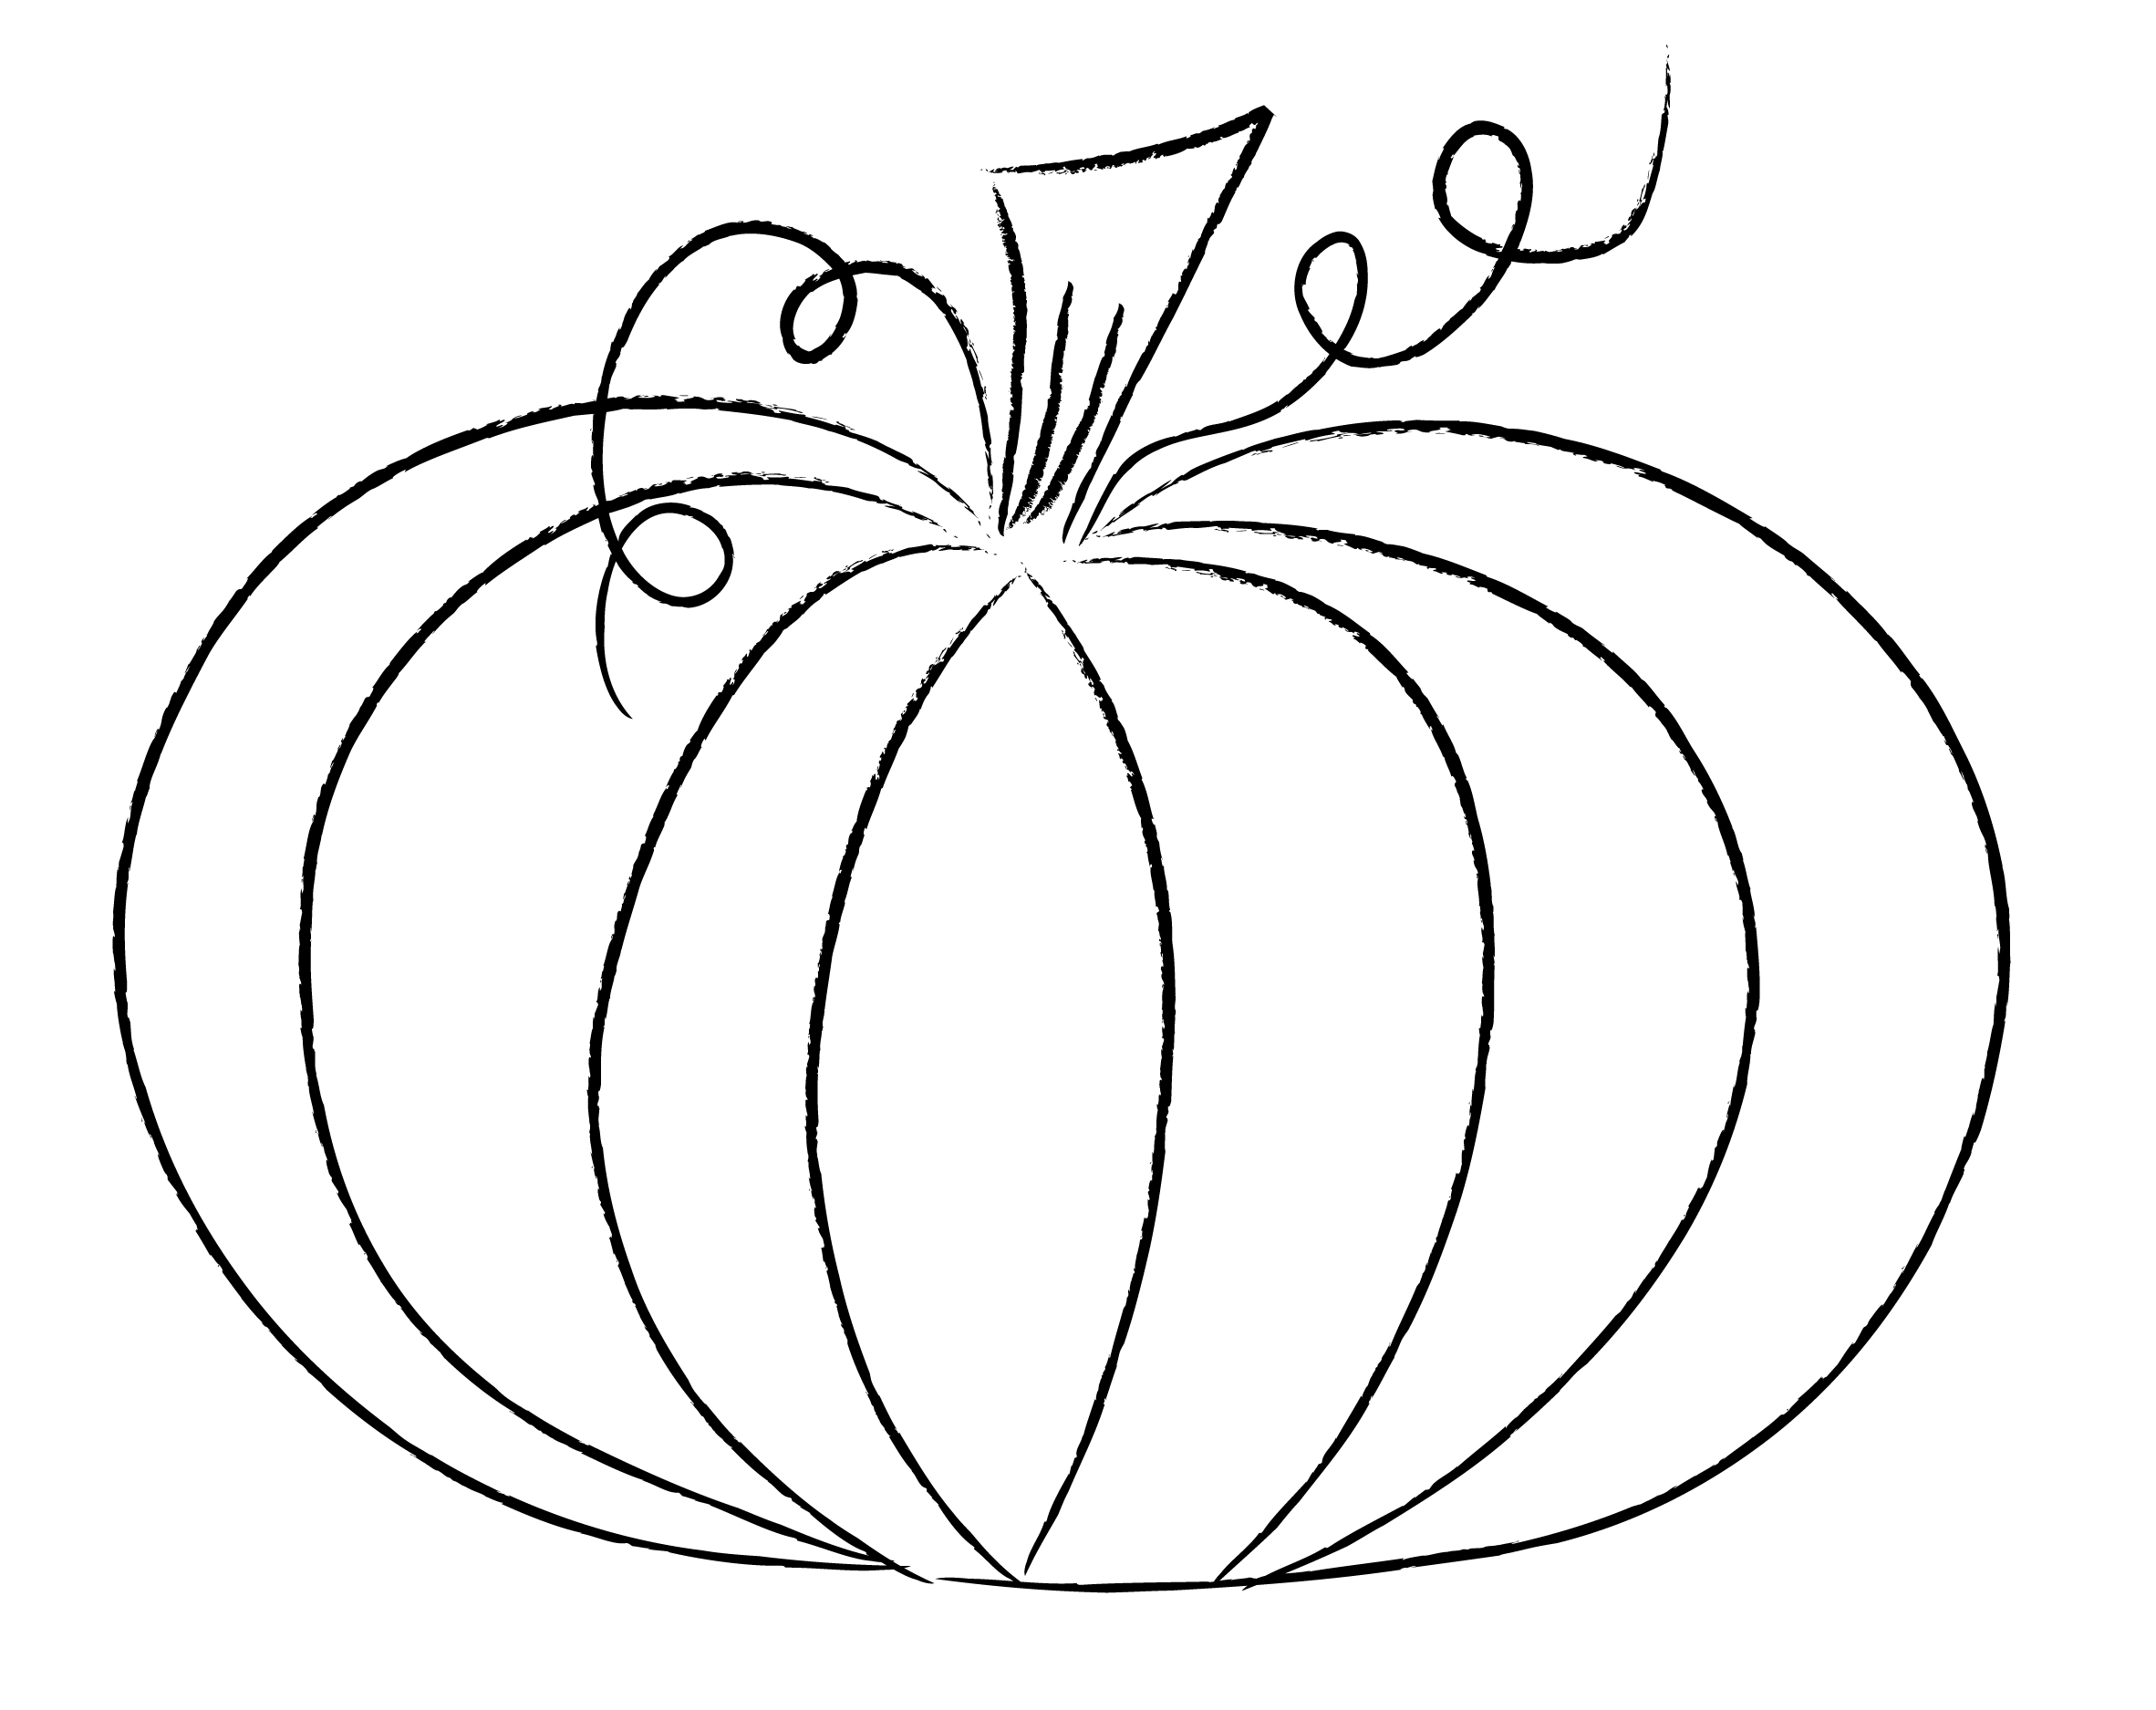 Rip Gravestone Pumpkin together with Images clipartof   small 1123063 Clipart Of A Halloween Ghost With Trick Or Treat Text And Jackolanterns Royalty Free Illustration besides Halloween En Couleurs 42616 1 in addition 11 Halloween Pumpkin Coloring Pages besides 2008 Mad King Thorn Wordsearch 141985224. on scary halloween drawings jack